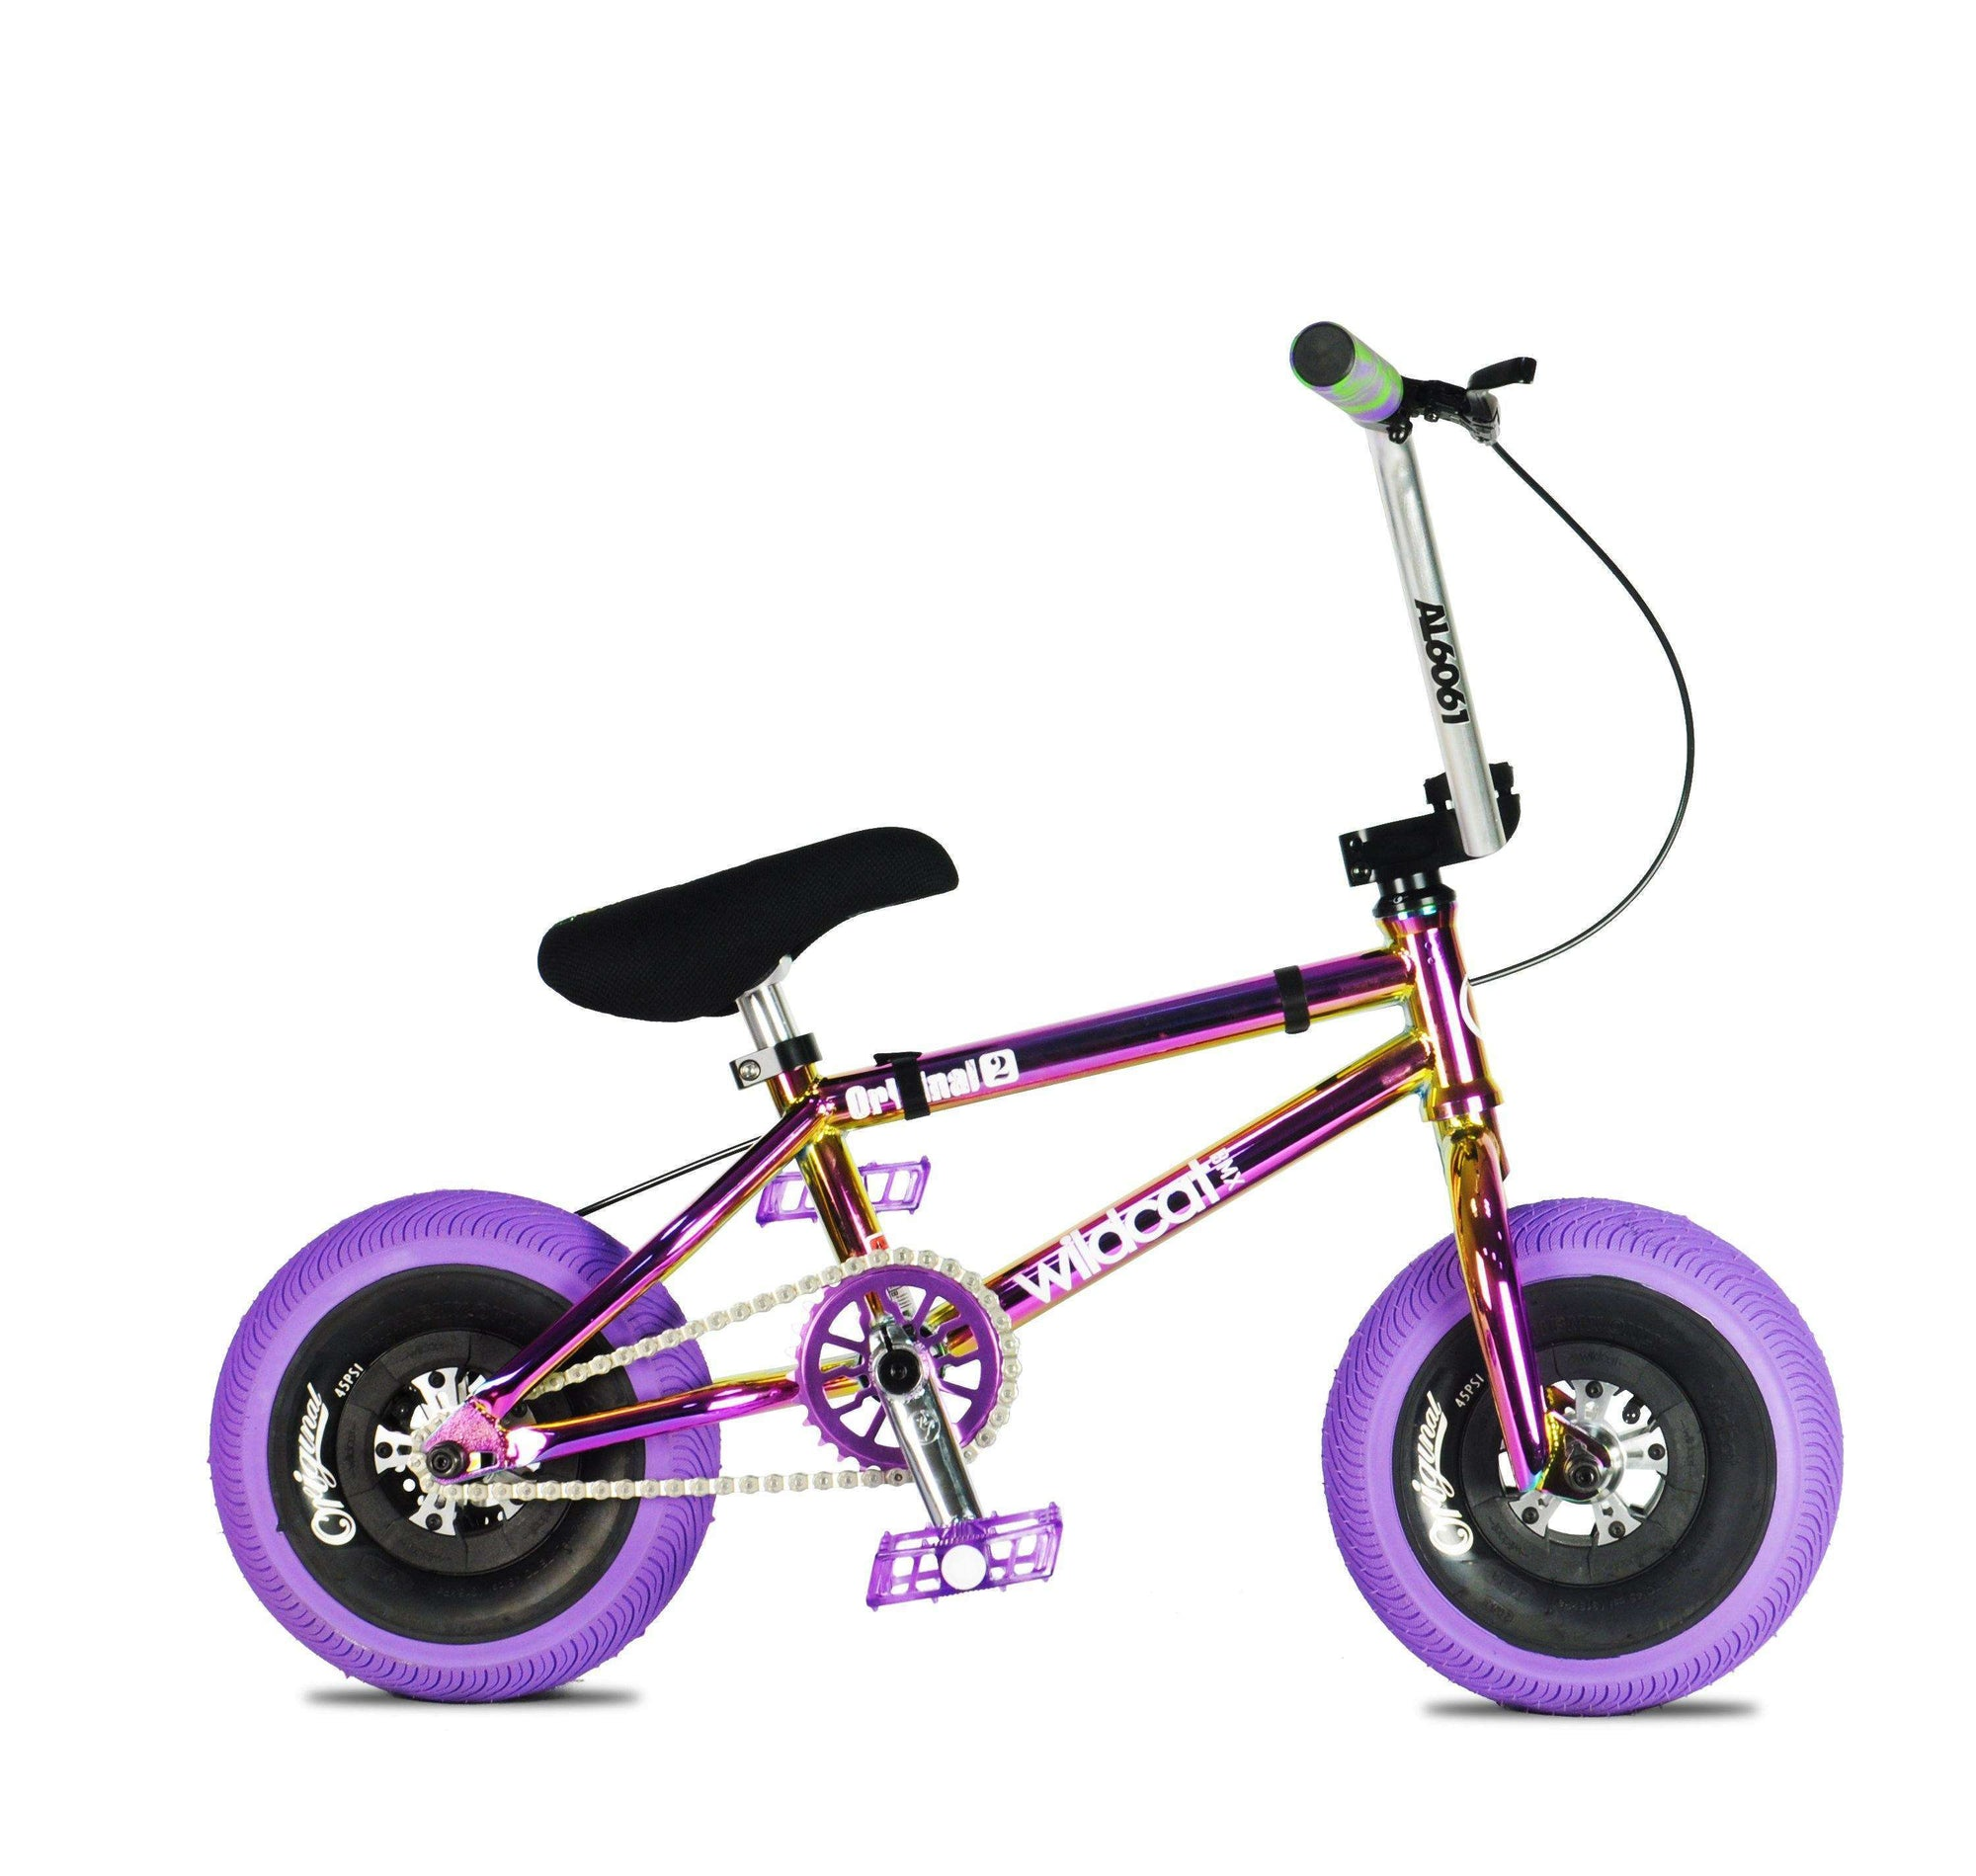 Pro Series Joker Purple - FREE Disc Brake & Pro Turbo Wheel Mini BMX Wildcat Mini BMX Disc Brakes